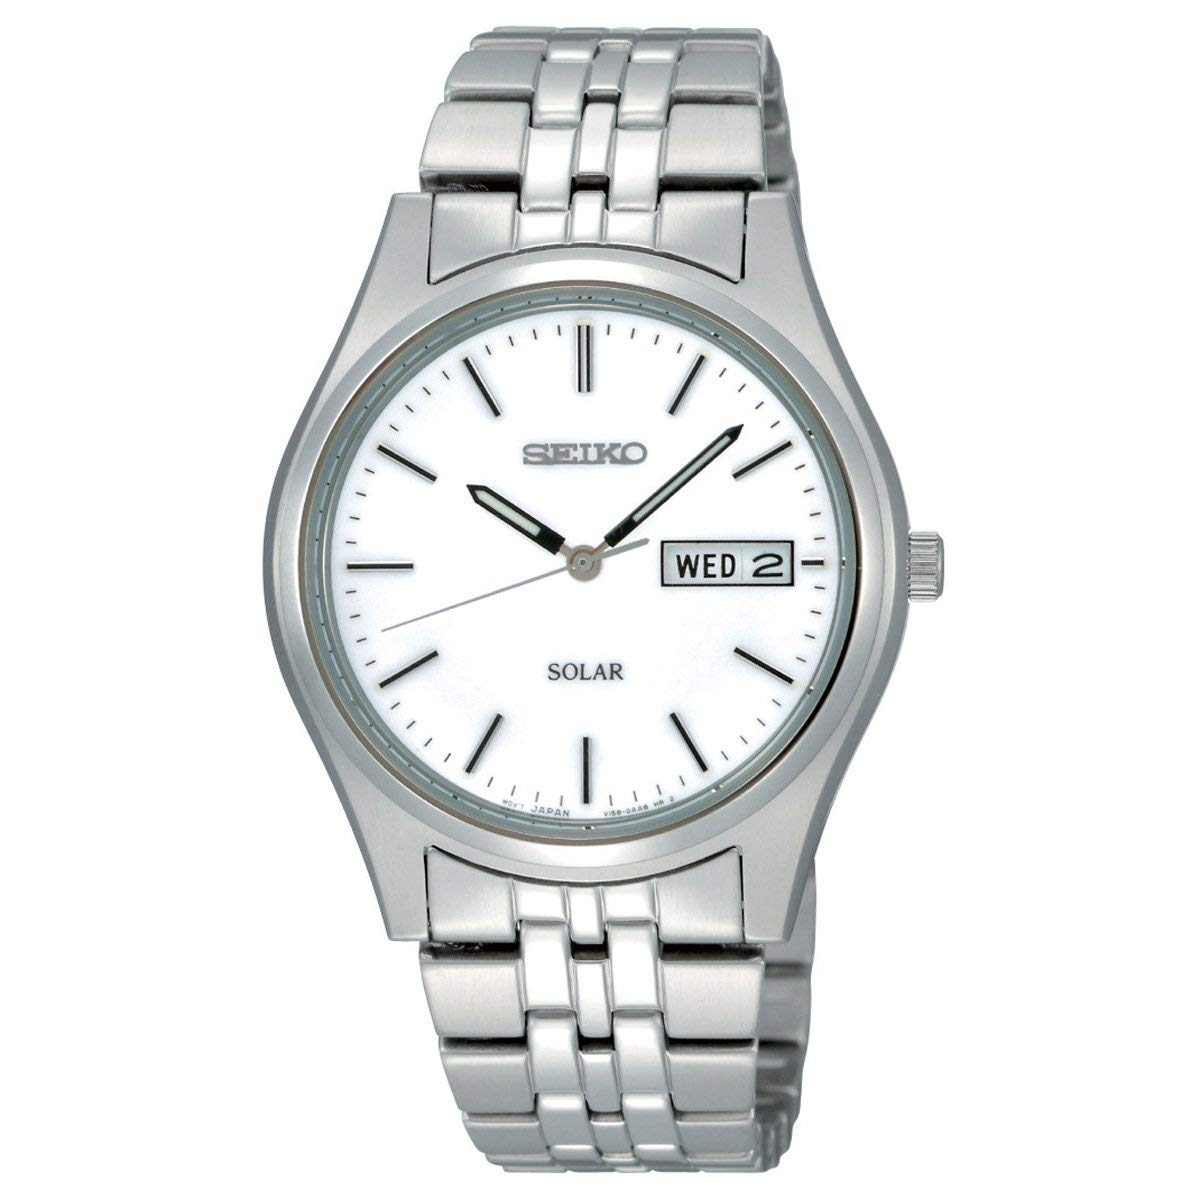 Seiko Men's Analog Solar Powered Watch with Stainless Steel Strap SNE031P1